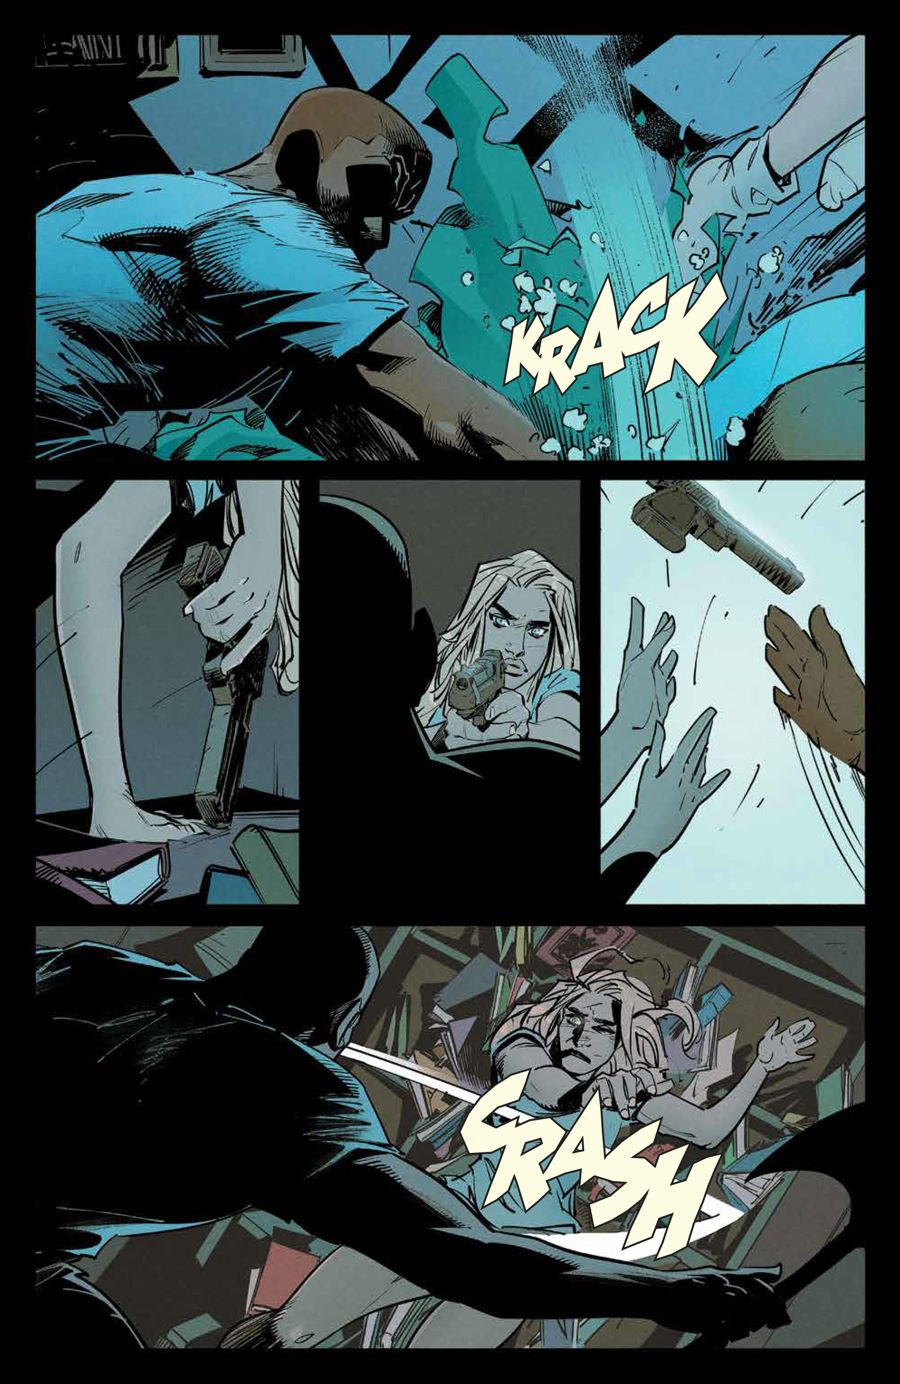 Angel_012_PRESS_3 ComicList Previews: ANGEL AND SPIKE #12